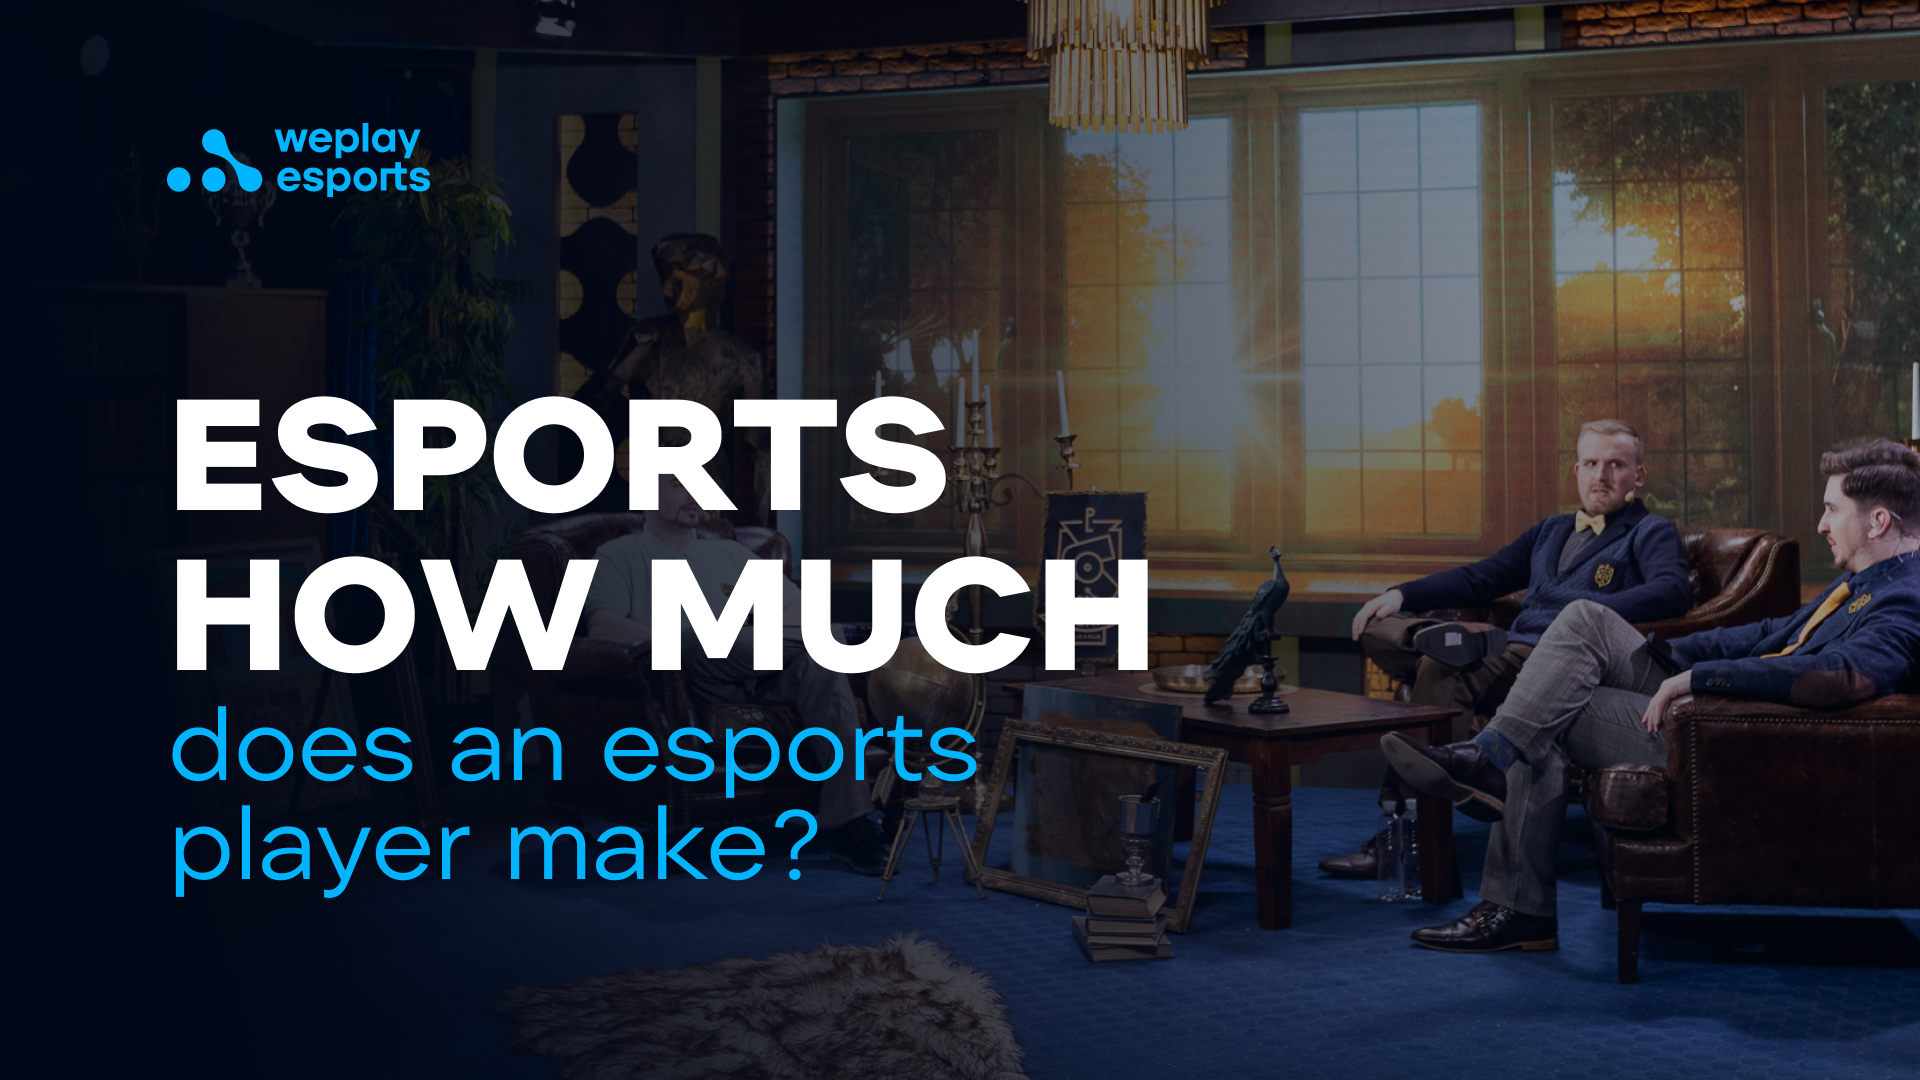 How much does an esports player make?